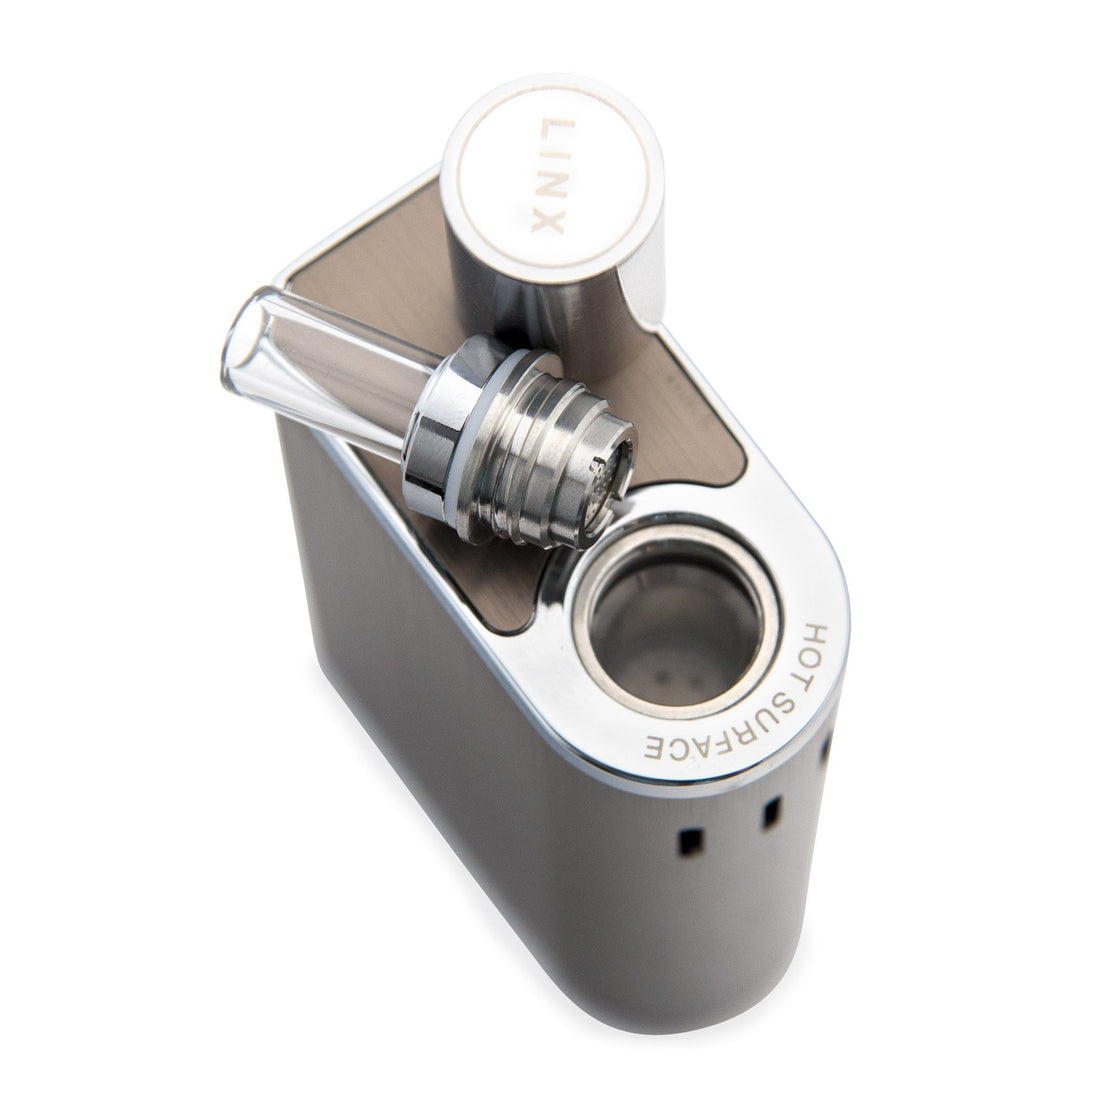 LINX Gaia Dry Herb Vaporizer - Steel - 420 Science - The most trusted online smoke shop.